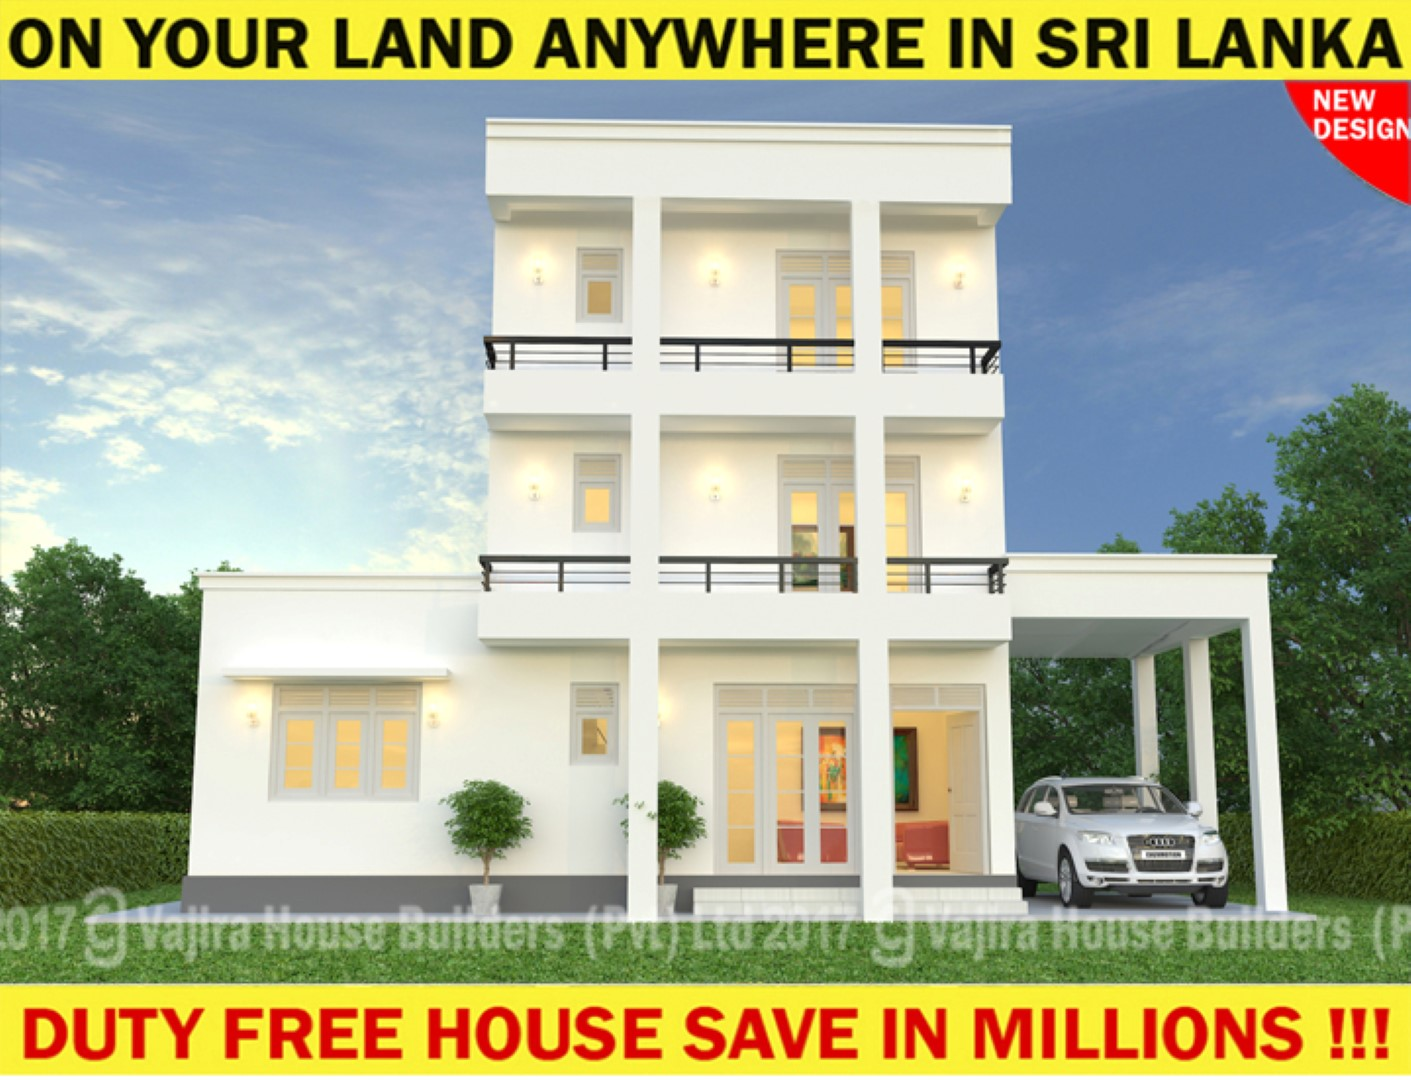 two_storey | Vajira House Builders (Private) Limited | Best